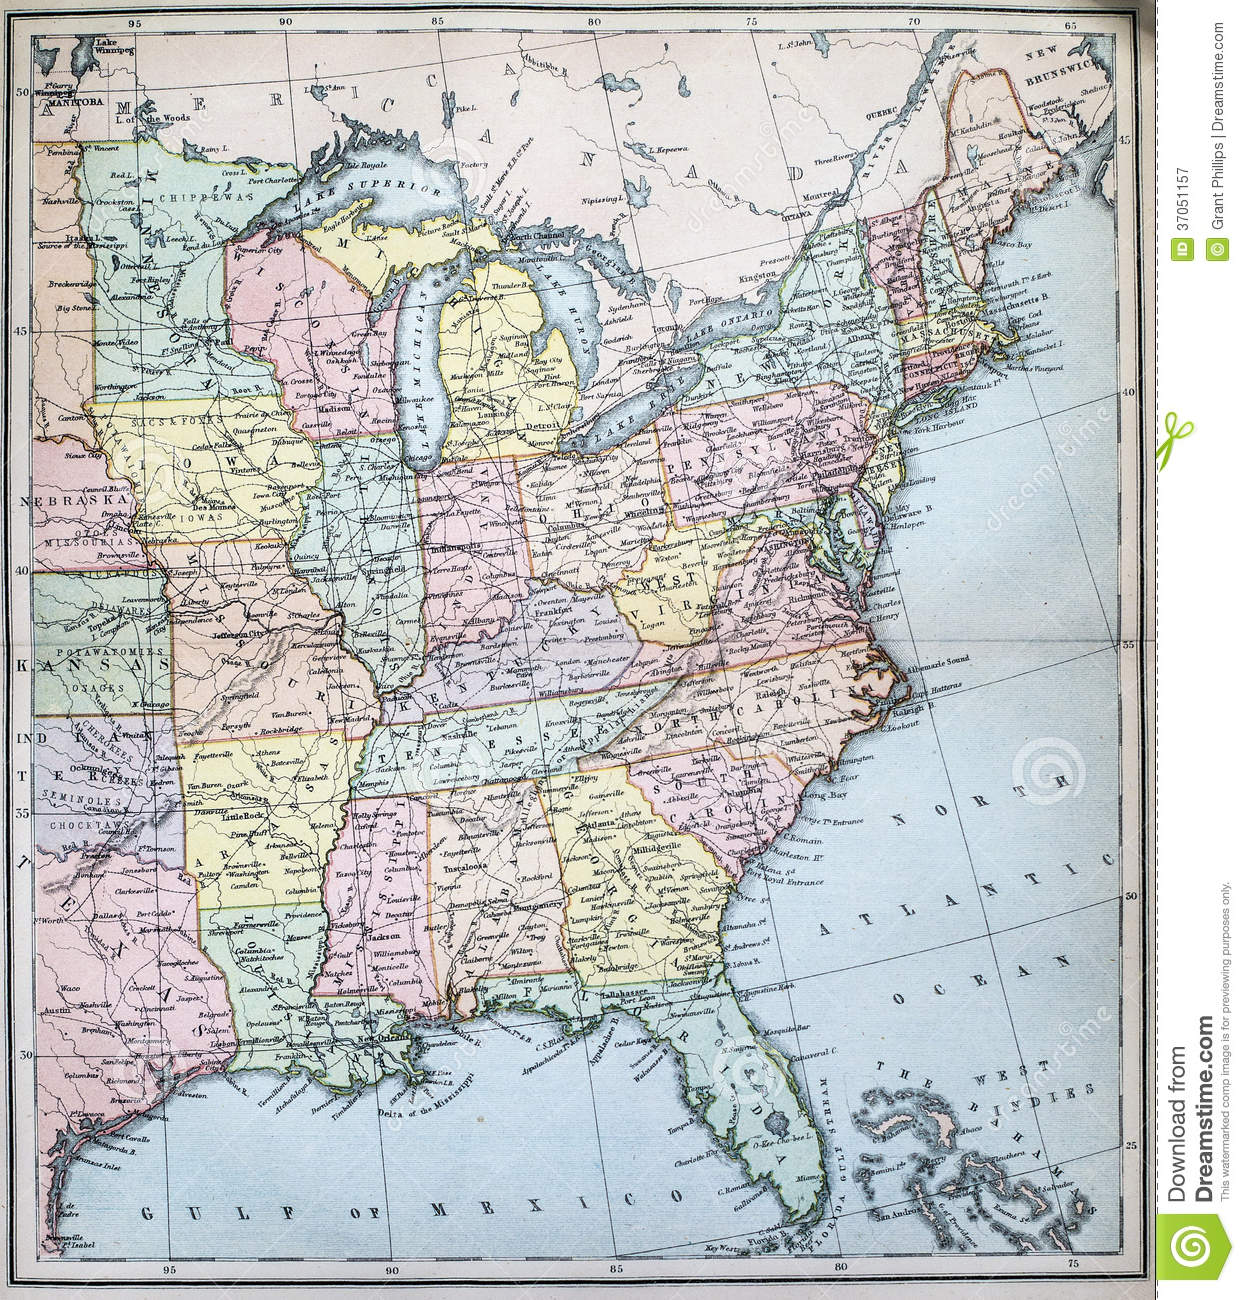 Antique Map Of Eastern States Of USA Stock Image - Image of eastern ...